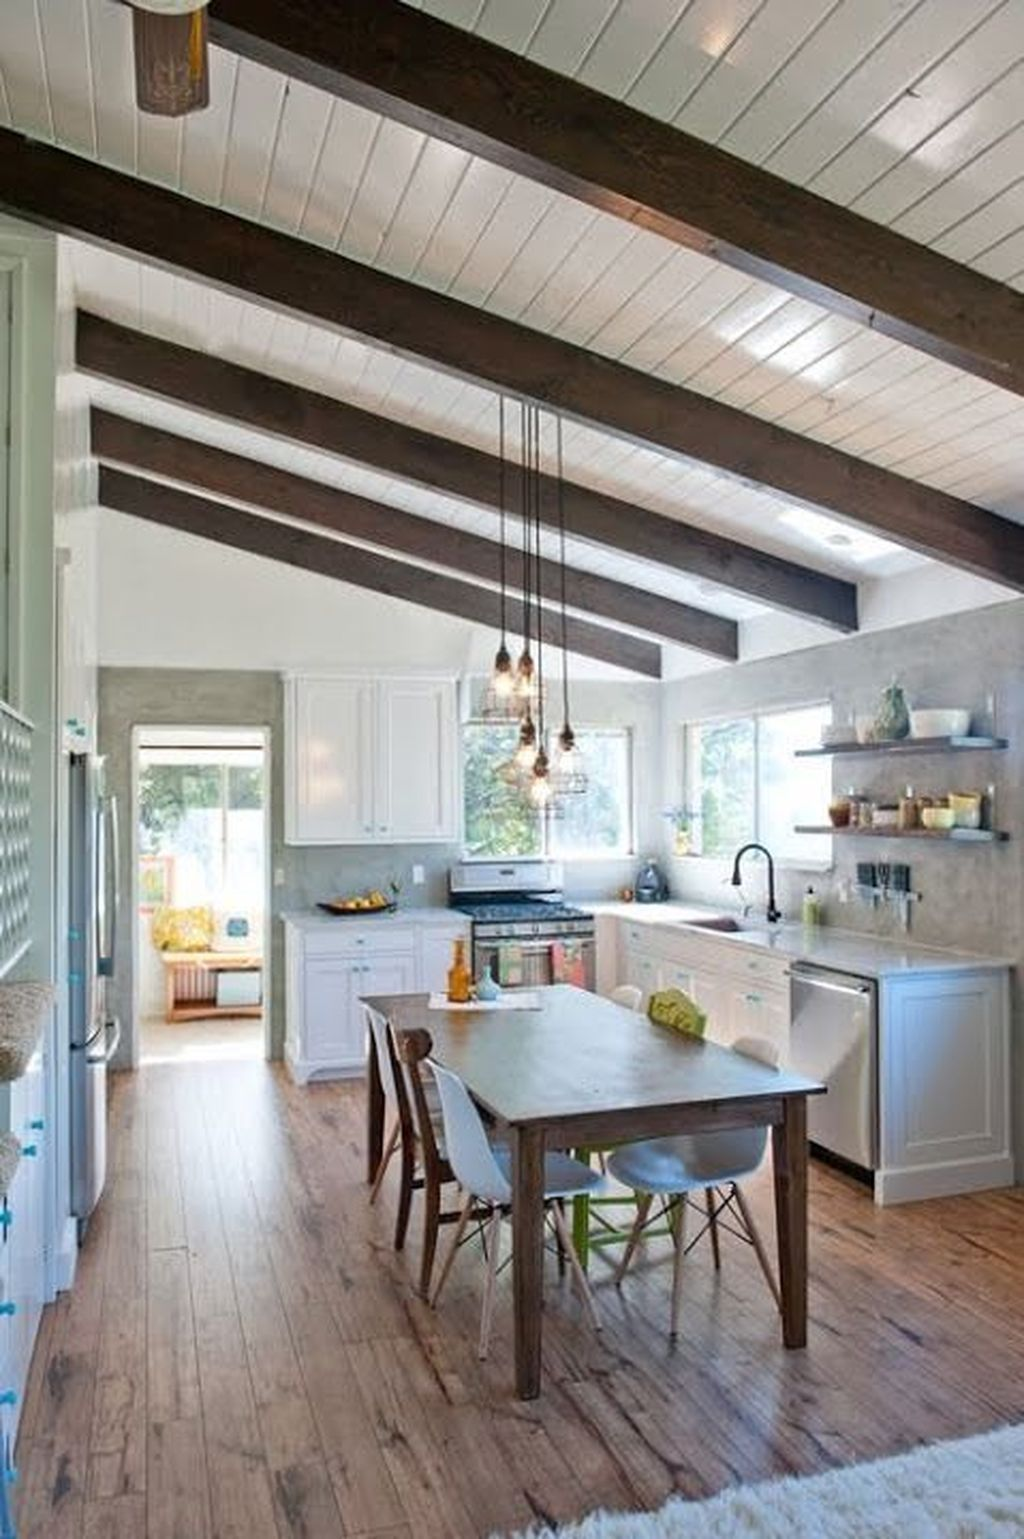 50 Affordable White Wood Beams Ceiling Ideas For Cottage Vaulted